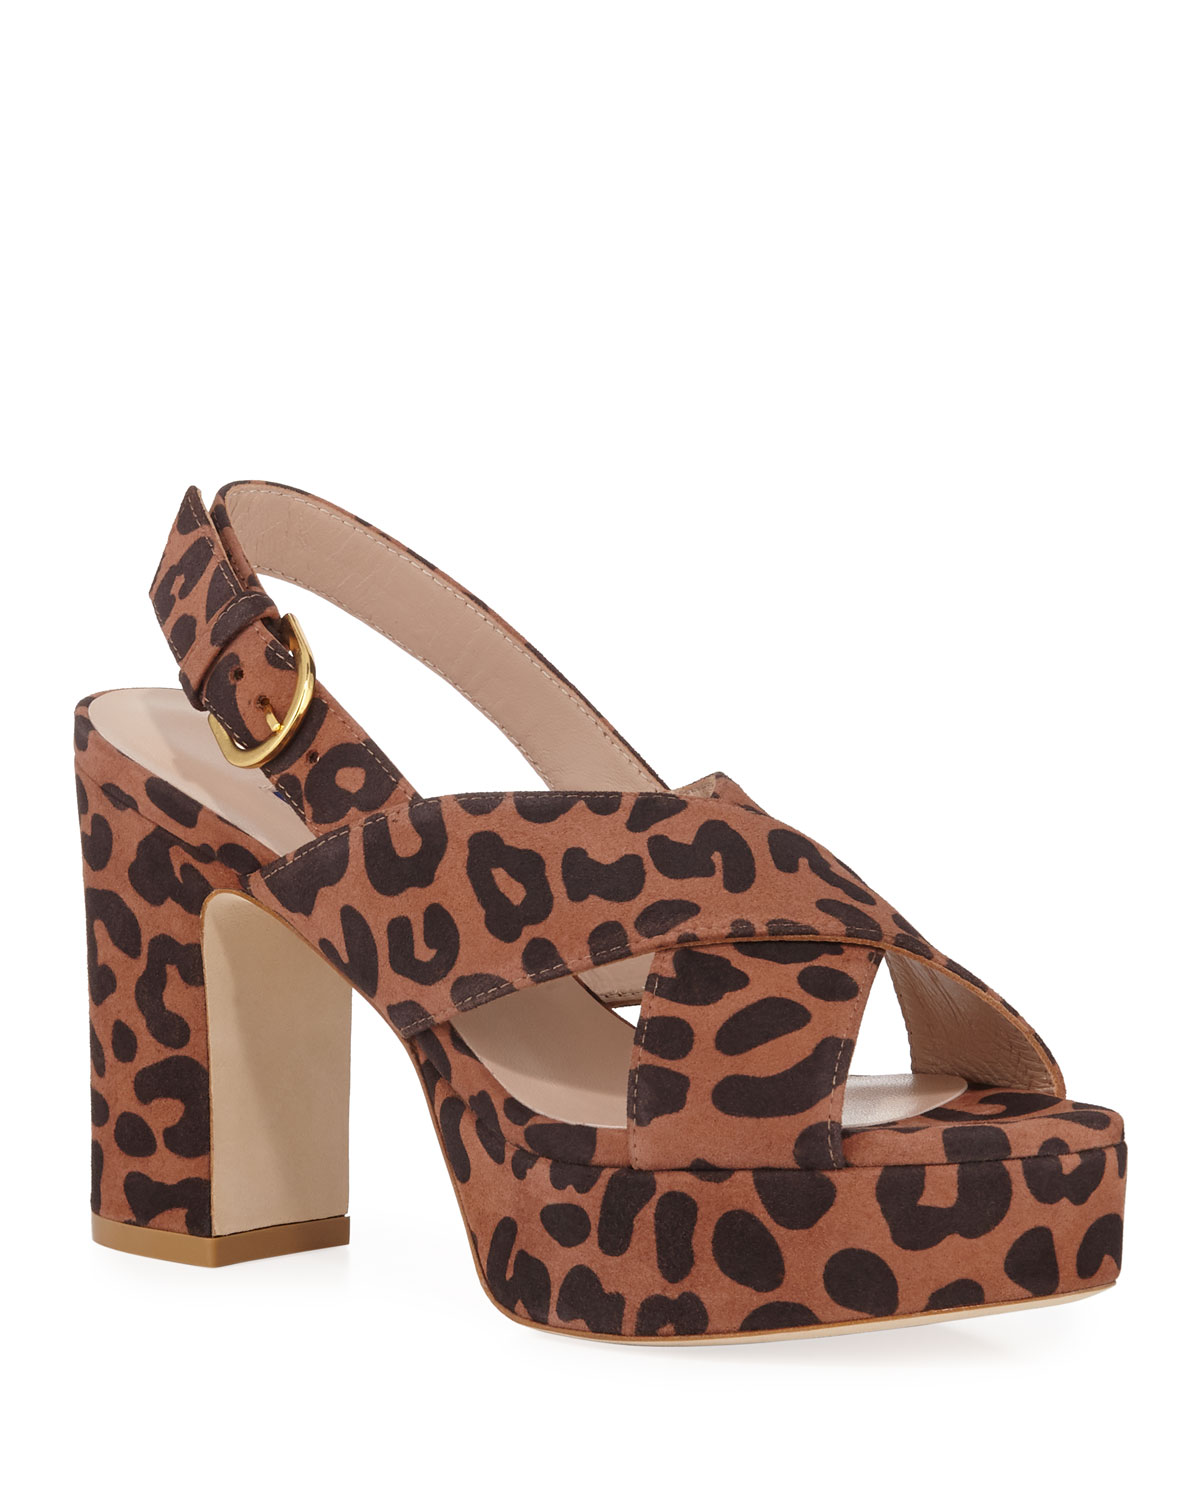 Jerry Cheetah Suede Sandals